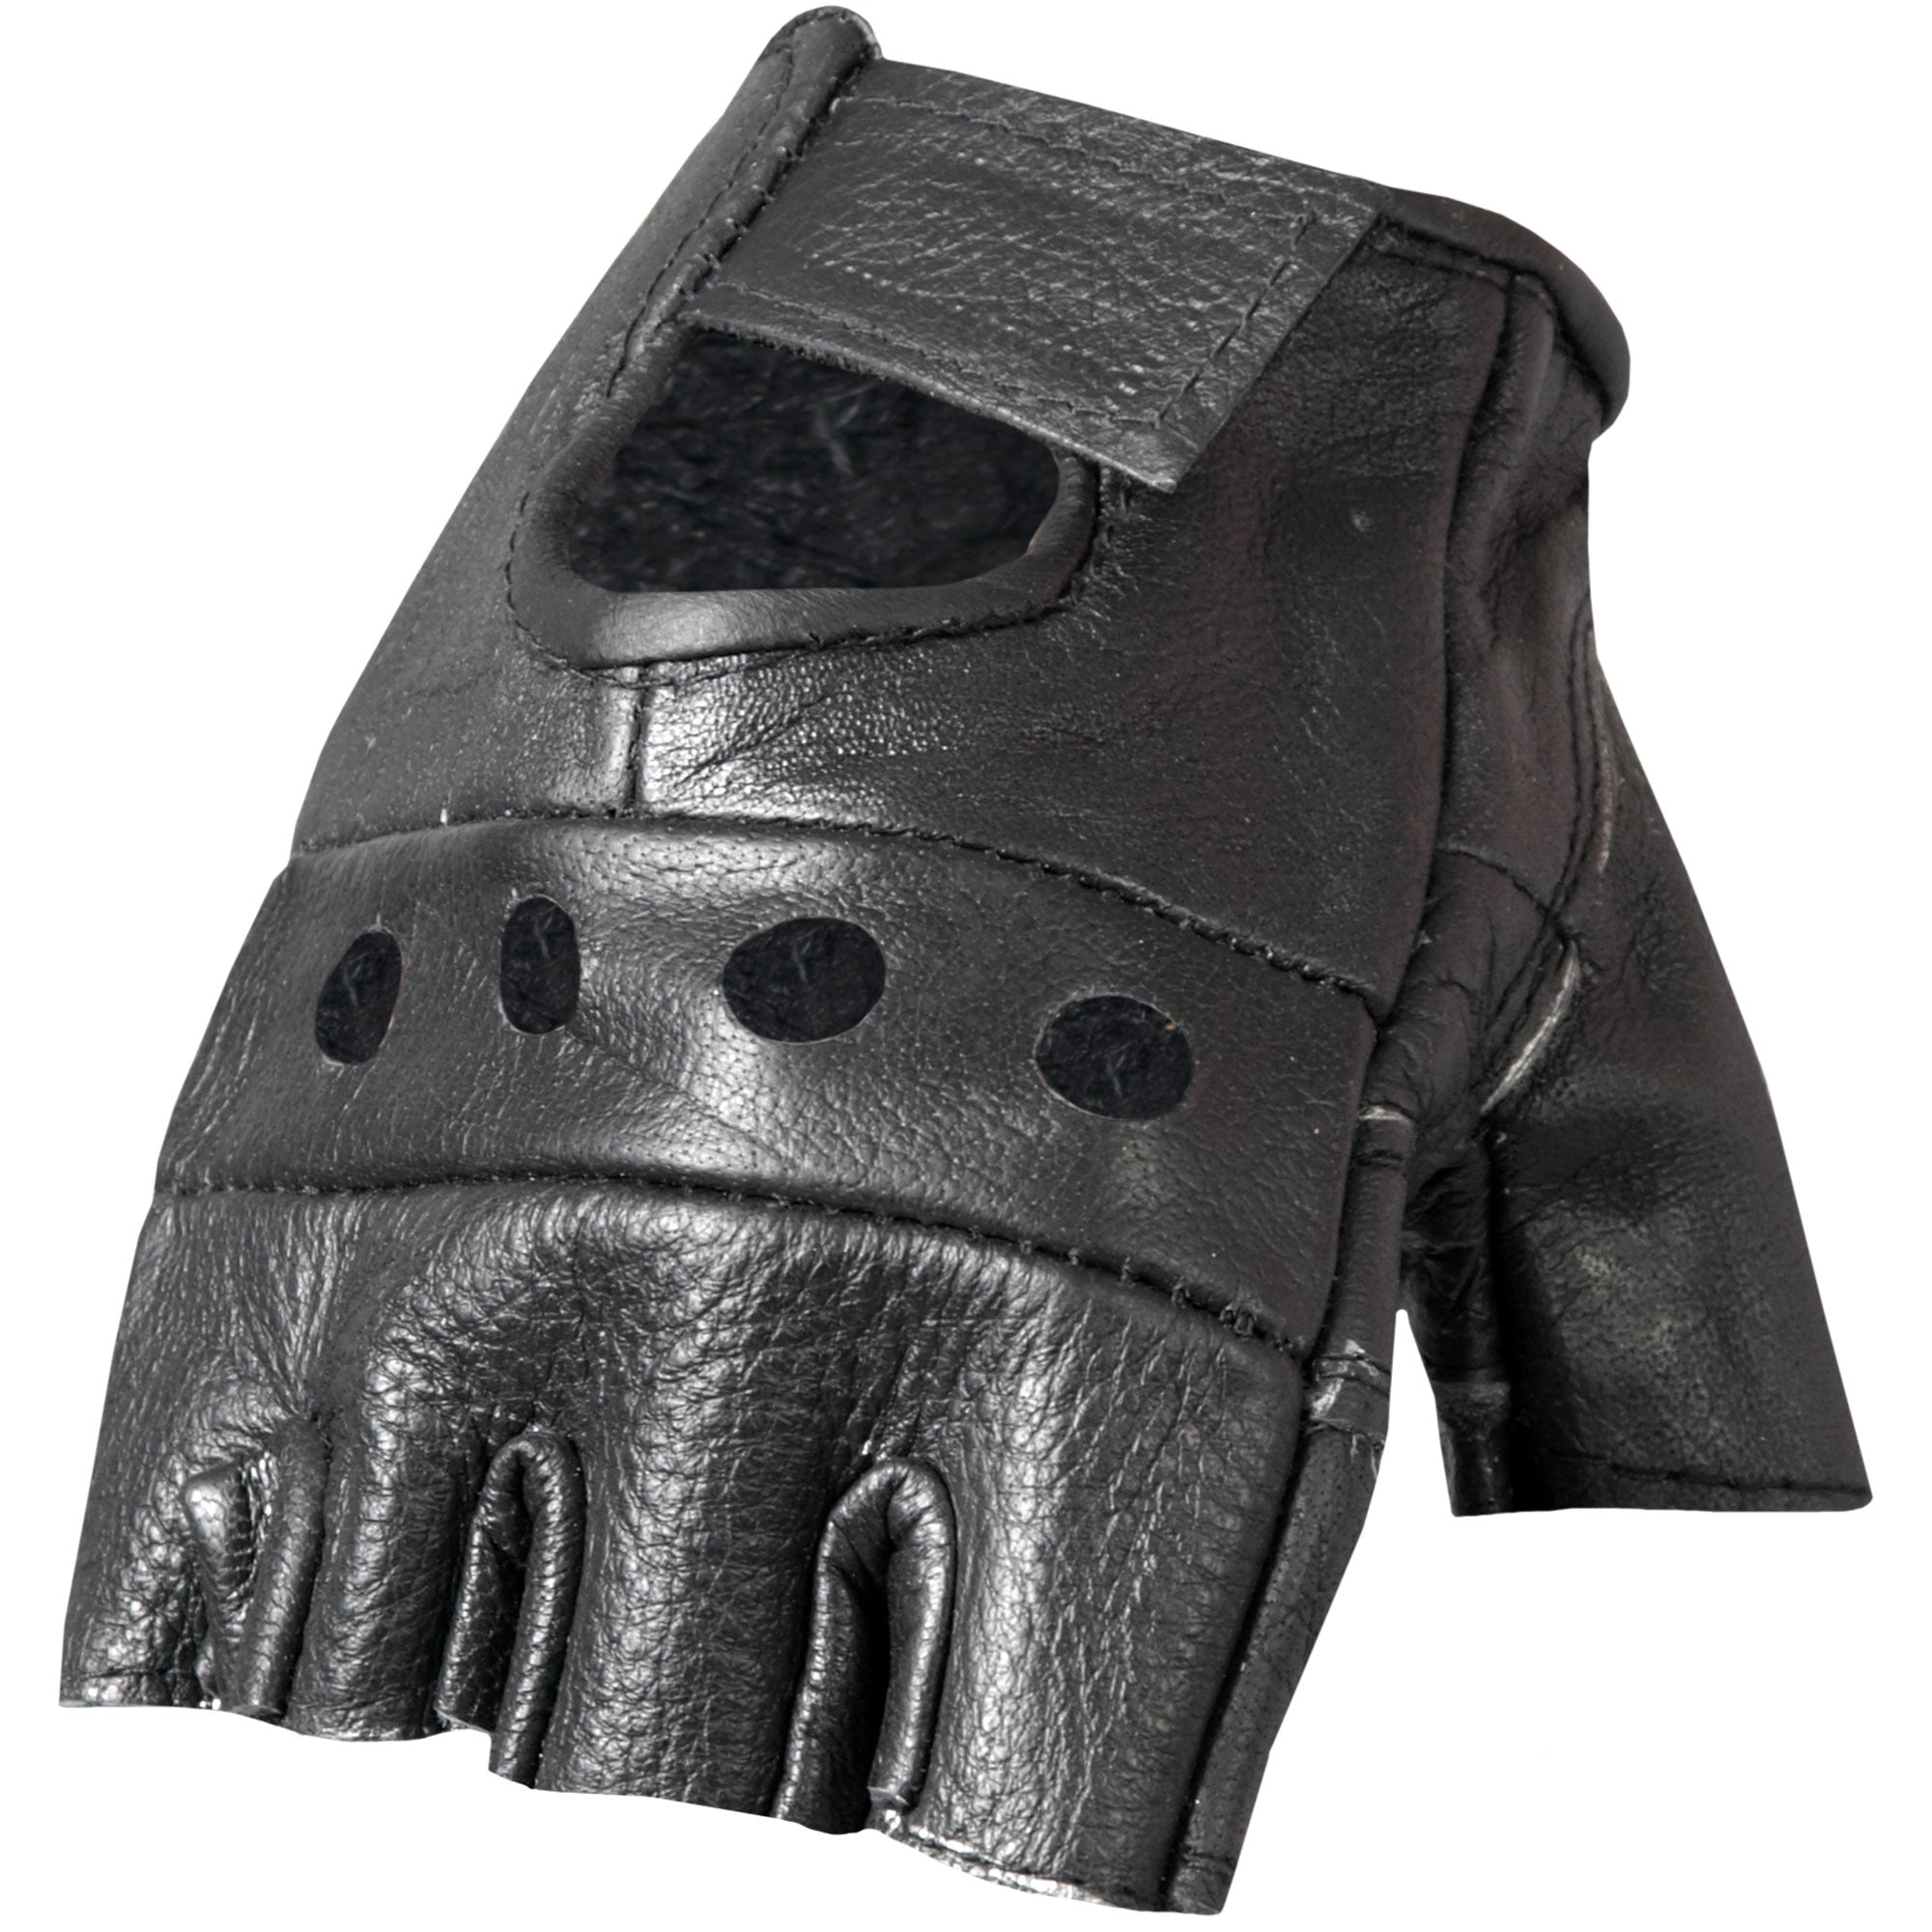 Hot Leathers Fingerless Leather Gloves